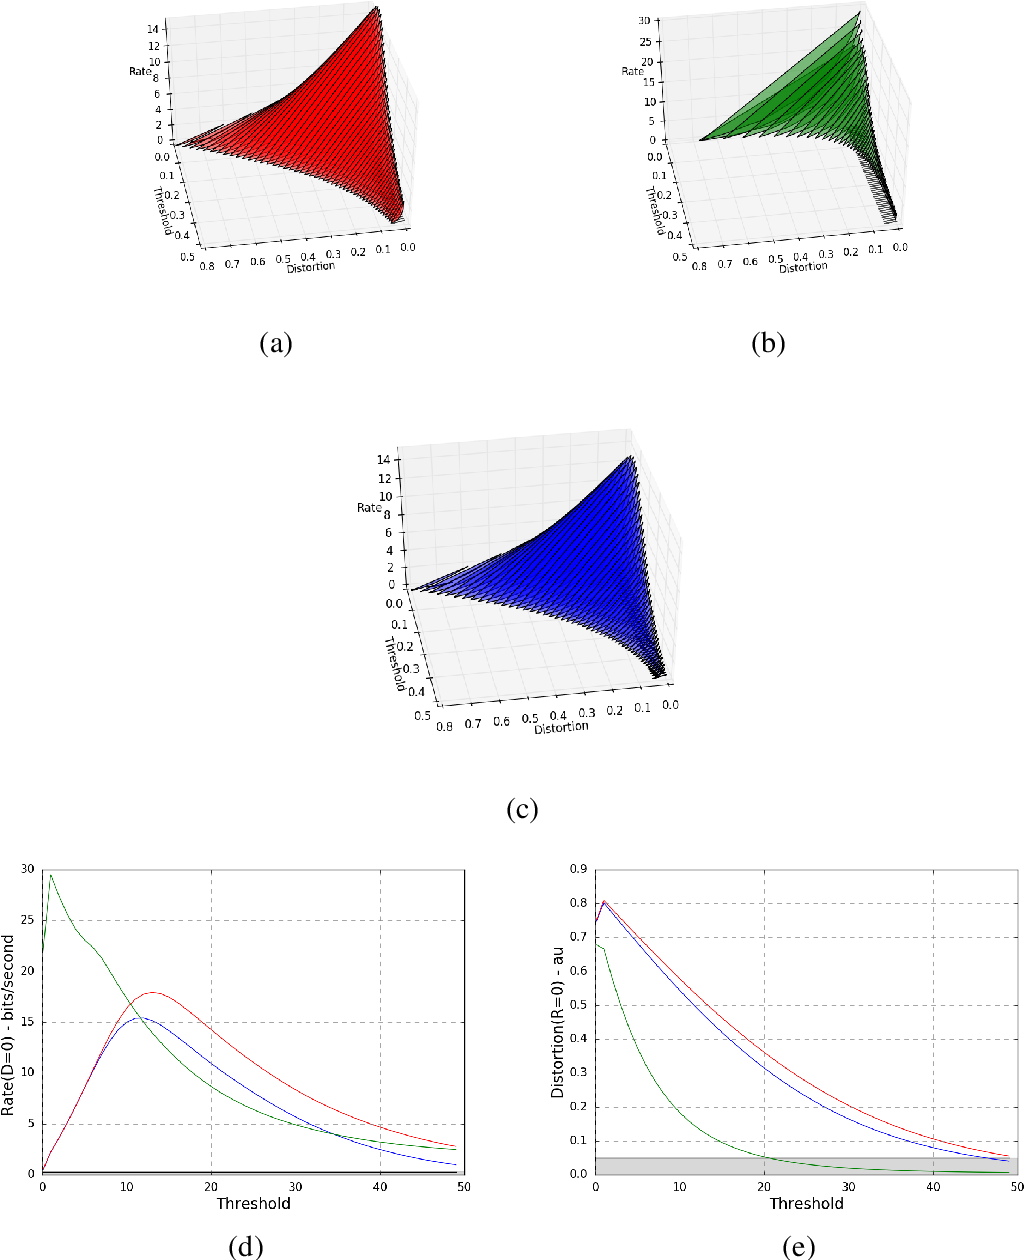 Fig. 6.7 Threshold-Rate-Distortion(TRD) Analysis. Individual TRD surfaces for (a) linear, (b) nonlinear and (c) total photoreceptor response when varying the threshold in the range of (0, 0.5) are shown in panels (b), (c) and (a) respectively. In all figures the theoretical lower bound is shown in black. Also, slices of these surfaces for the cases of low noise levels and high noise levels are shown in panels (d) and (e) respectively.